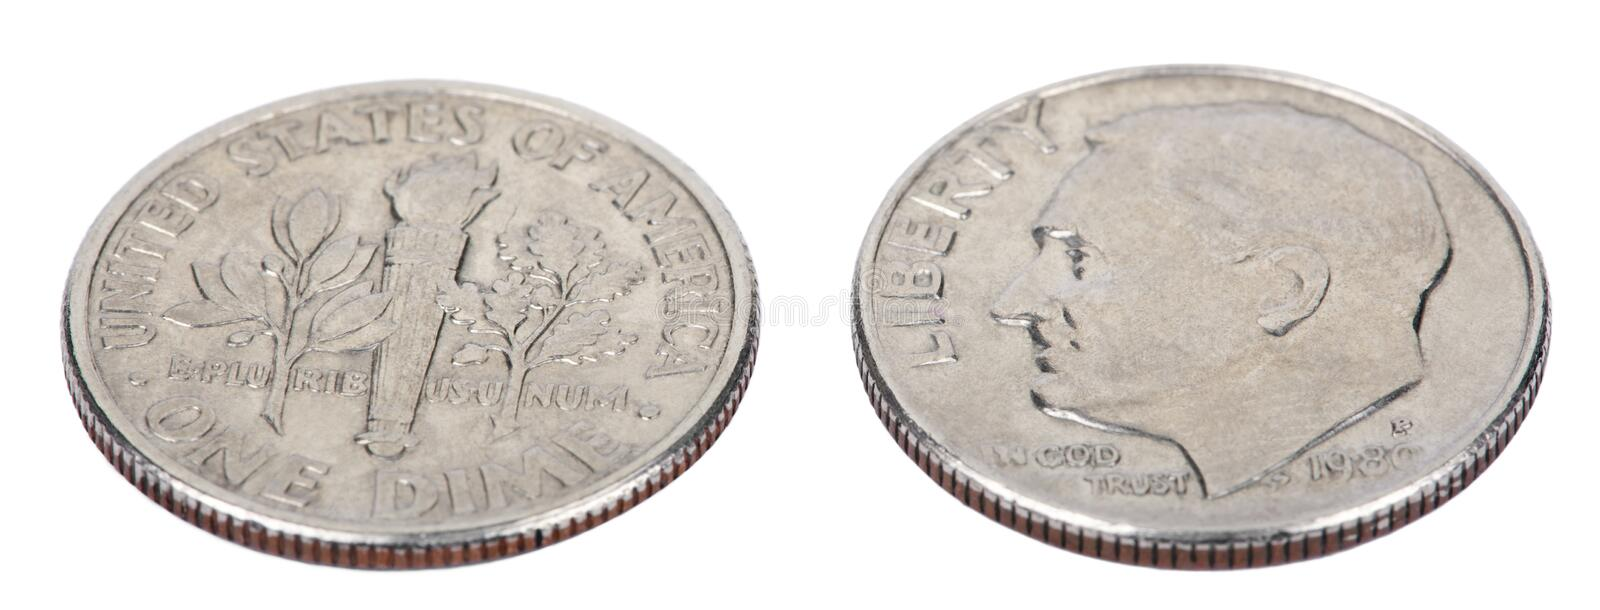 Isolated Dime - Both Sides High Angle royalty free stock photo